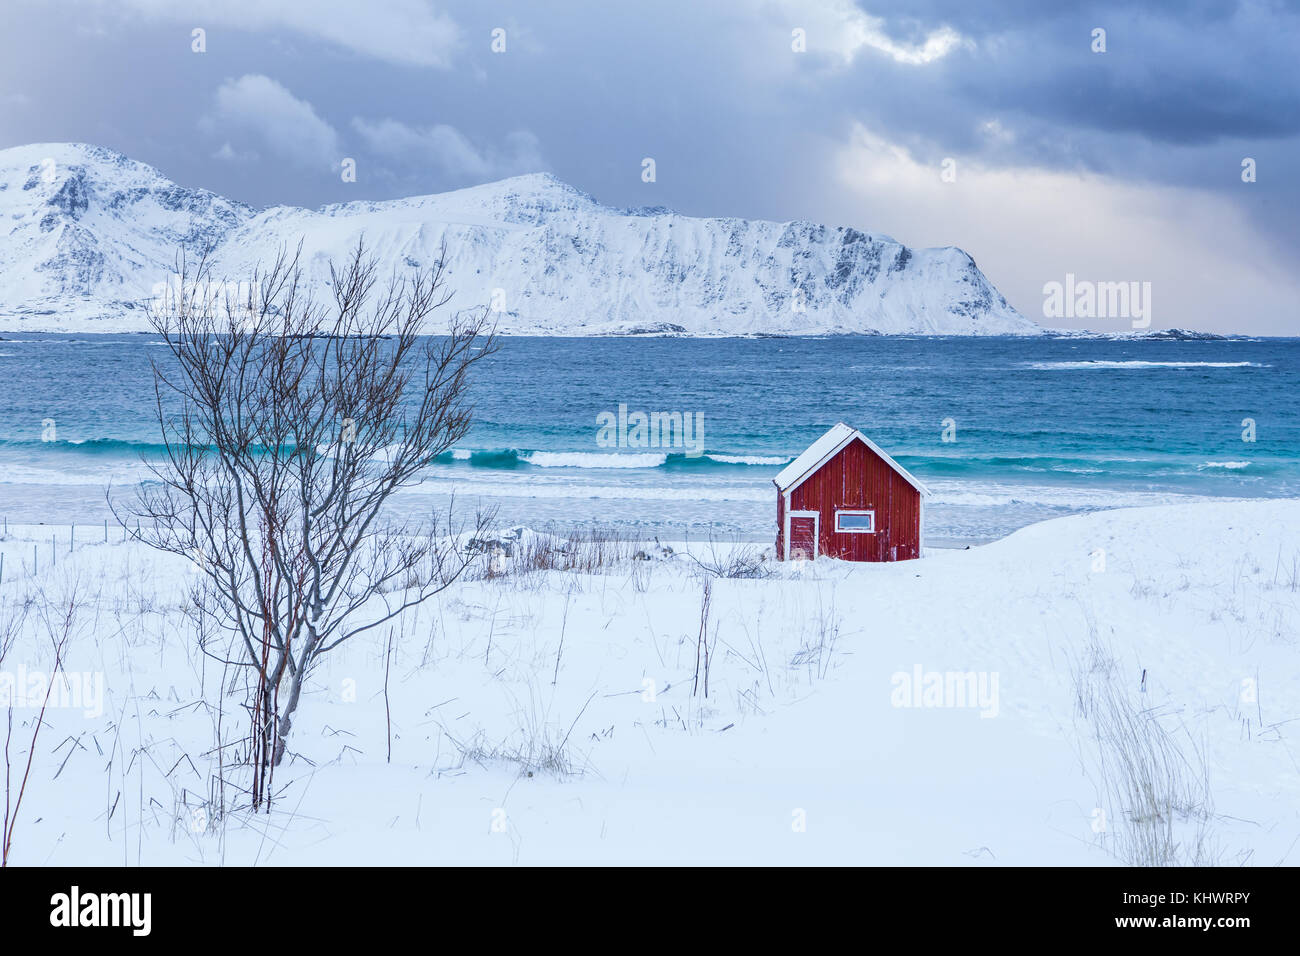 A typical house of the fishermen called rorbu on the snowy beach frames the icy sea at Ramberg Lofoten Islands, - Stock Image